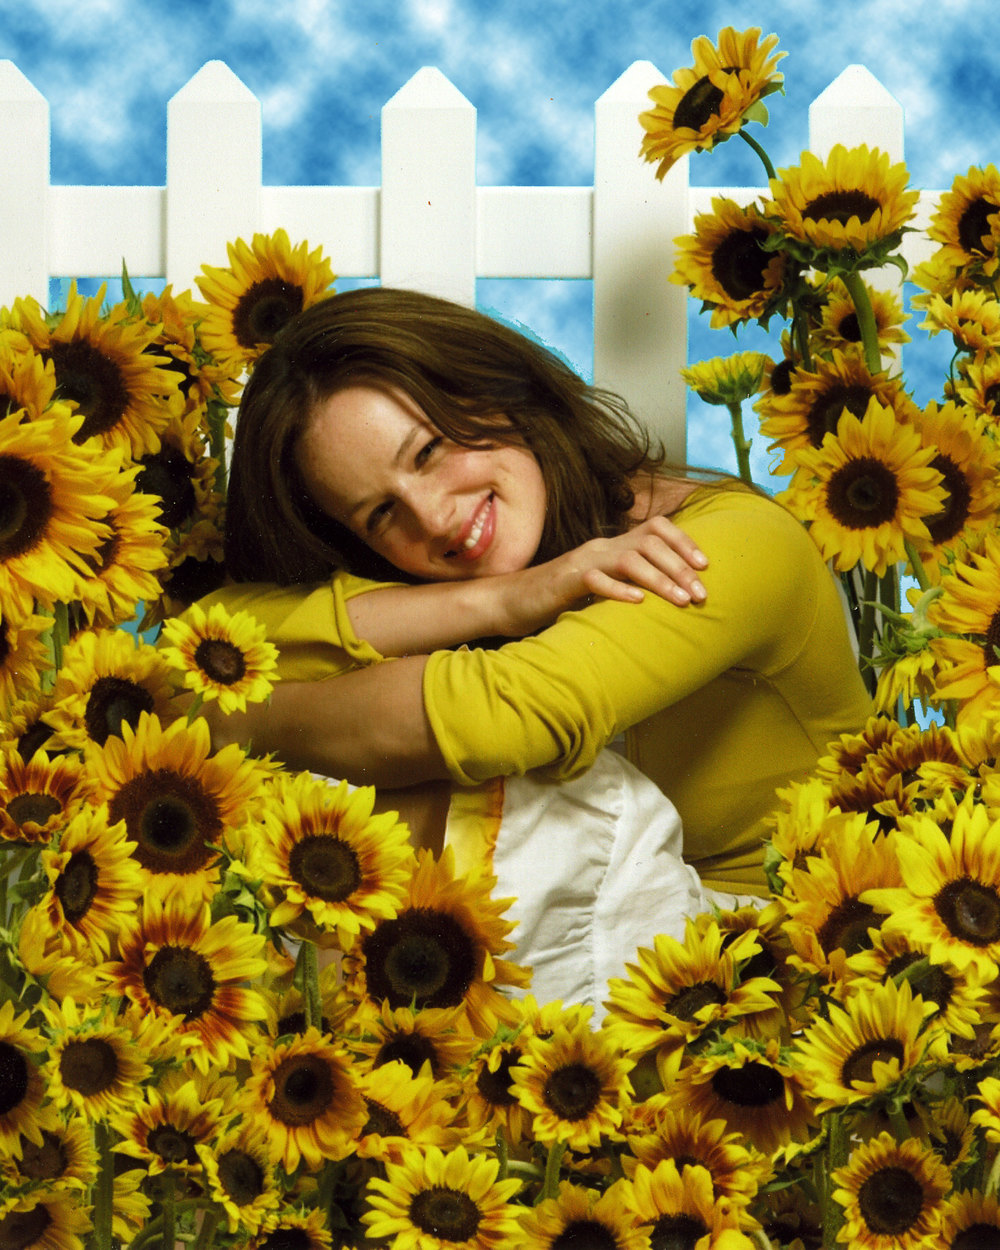 sunflower2.jpg